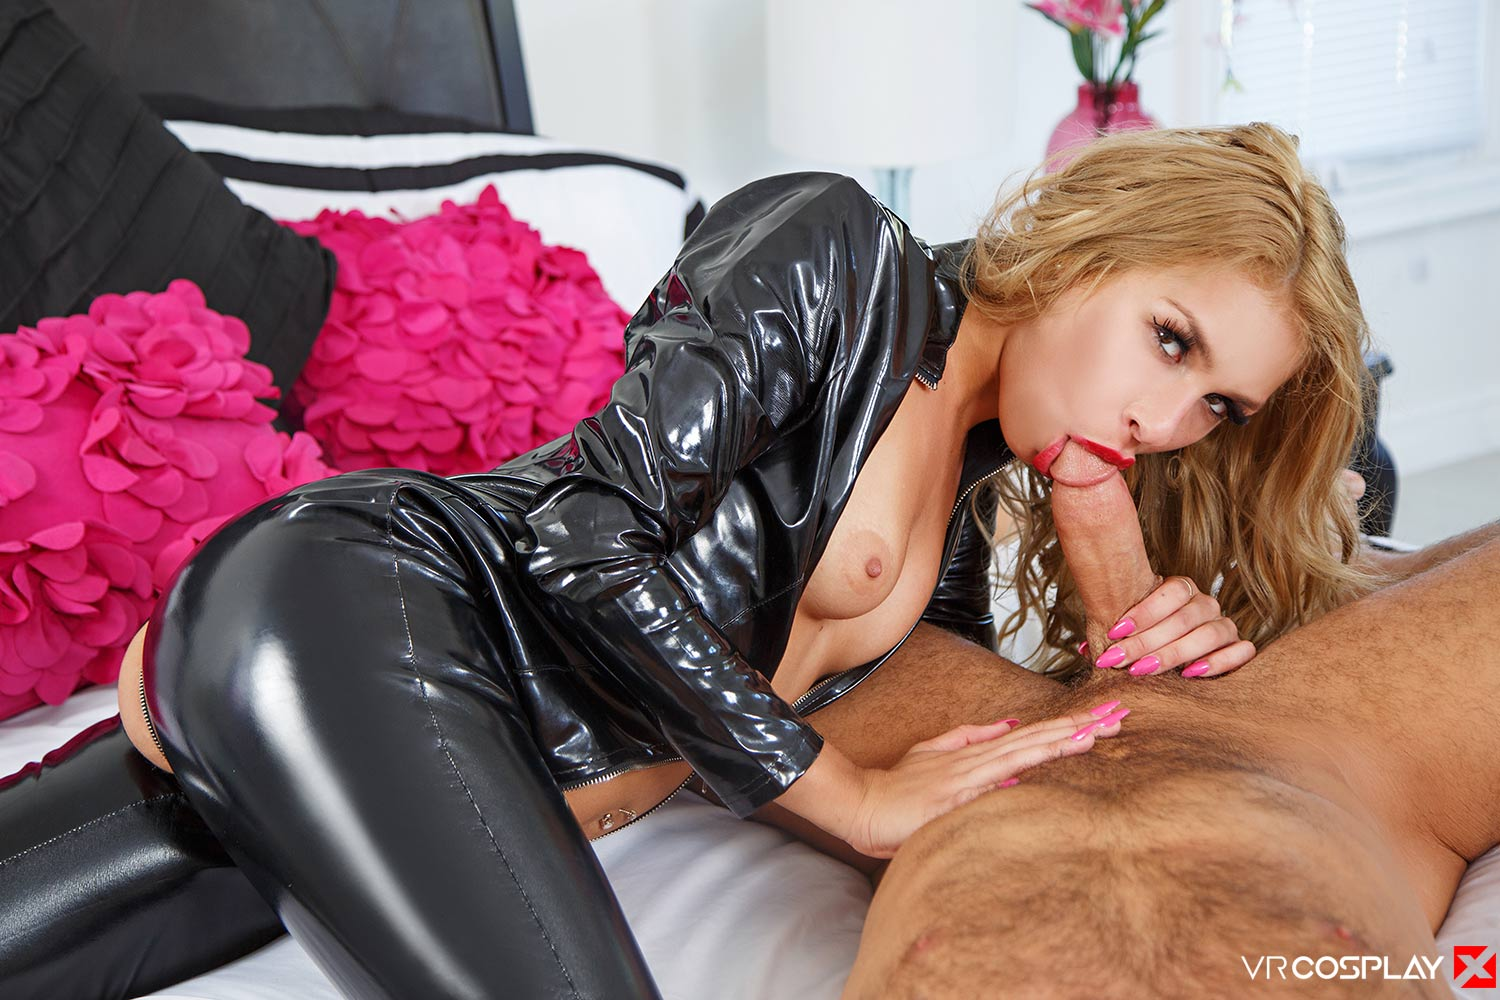 image Sexbabesvr gym pussy with angel piaff